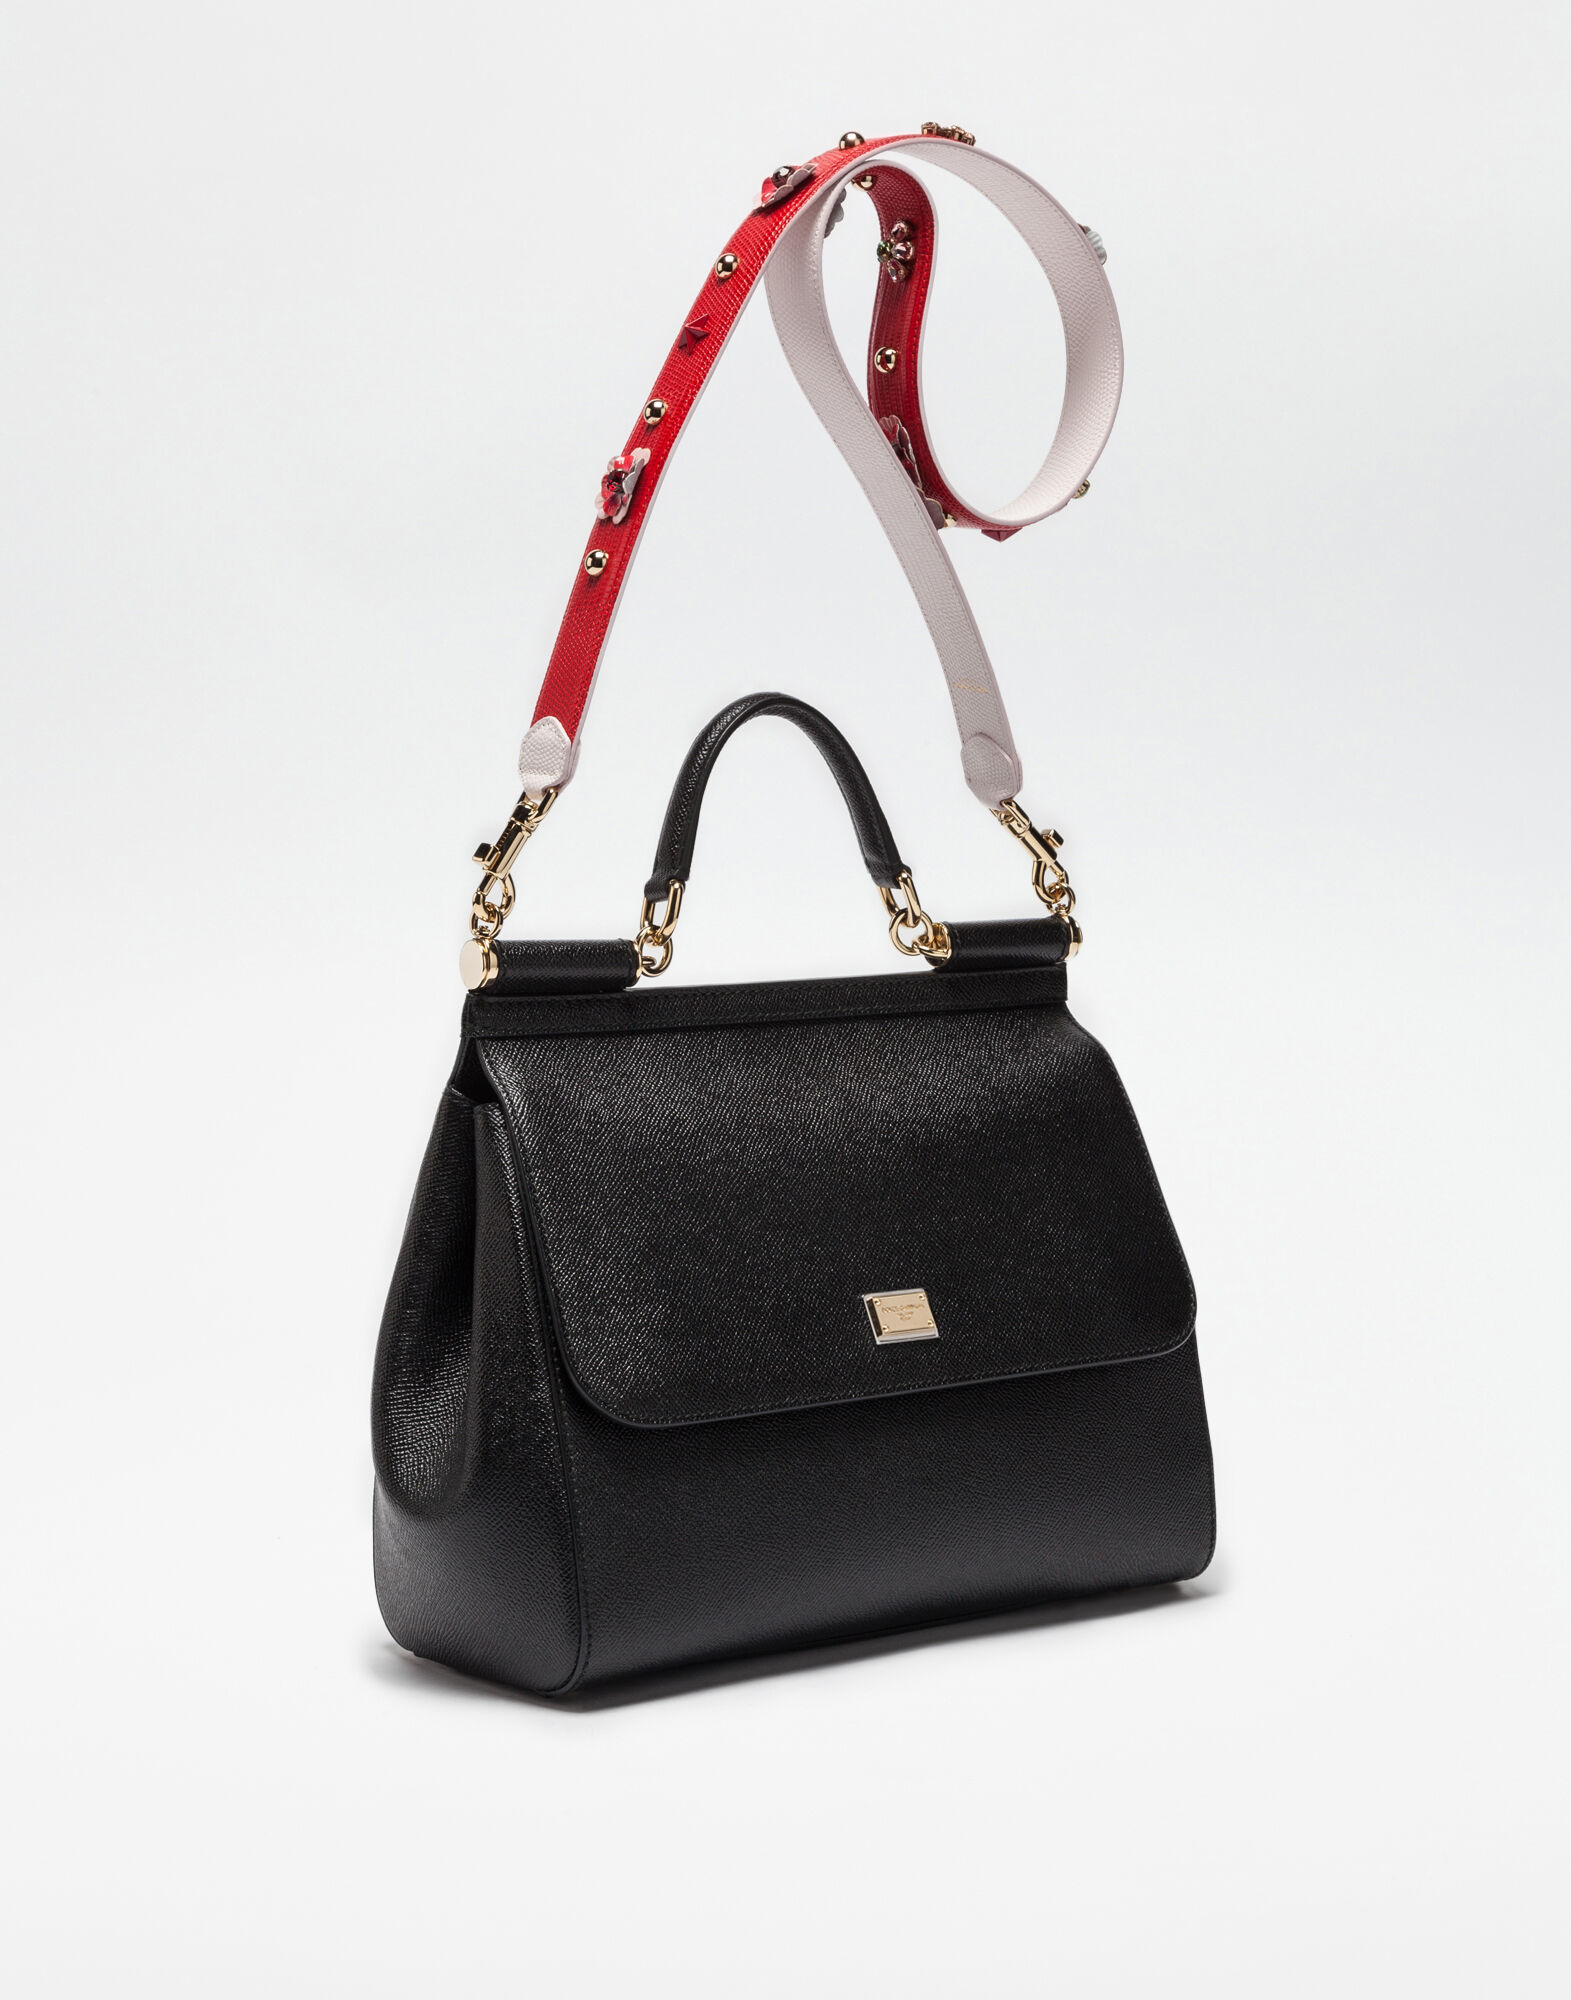 SHOULDER BAG IN DAUPHINE LEATHER WITH APPLICATIONS